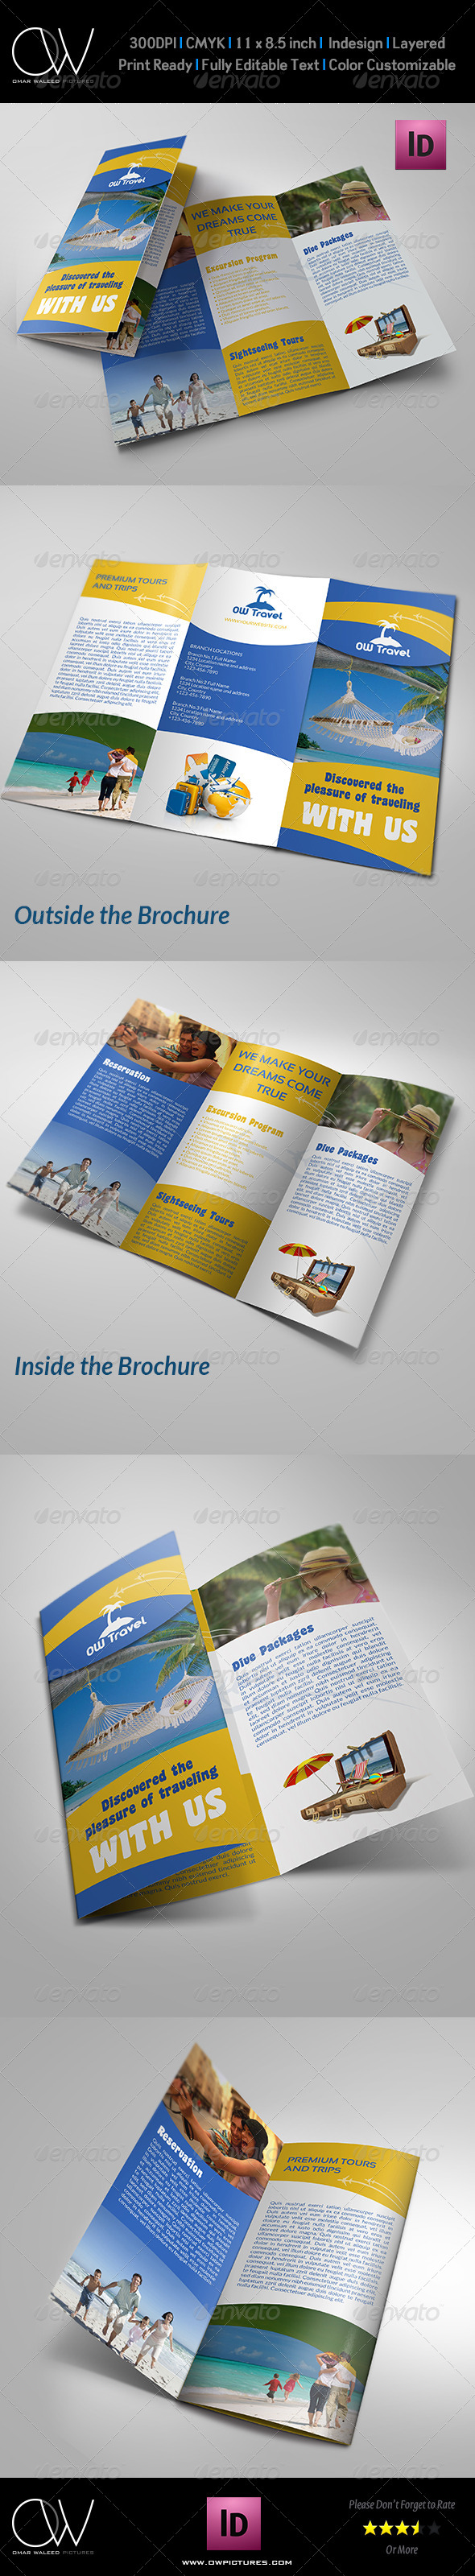 Travel company tri fold brochure template by owpictures for Brochure templates envato